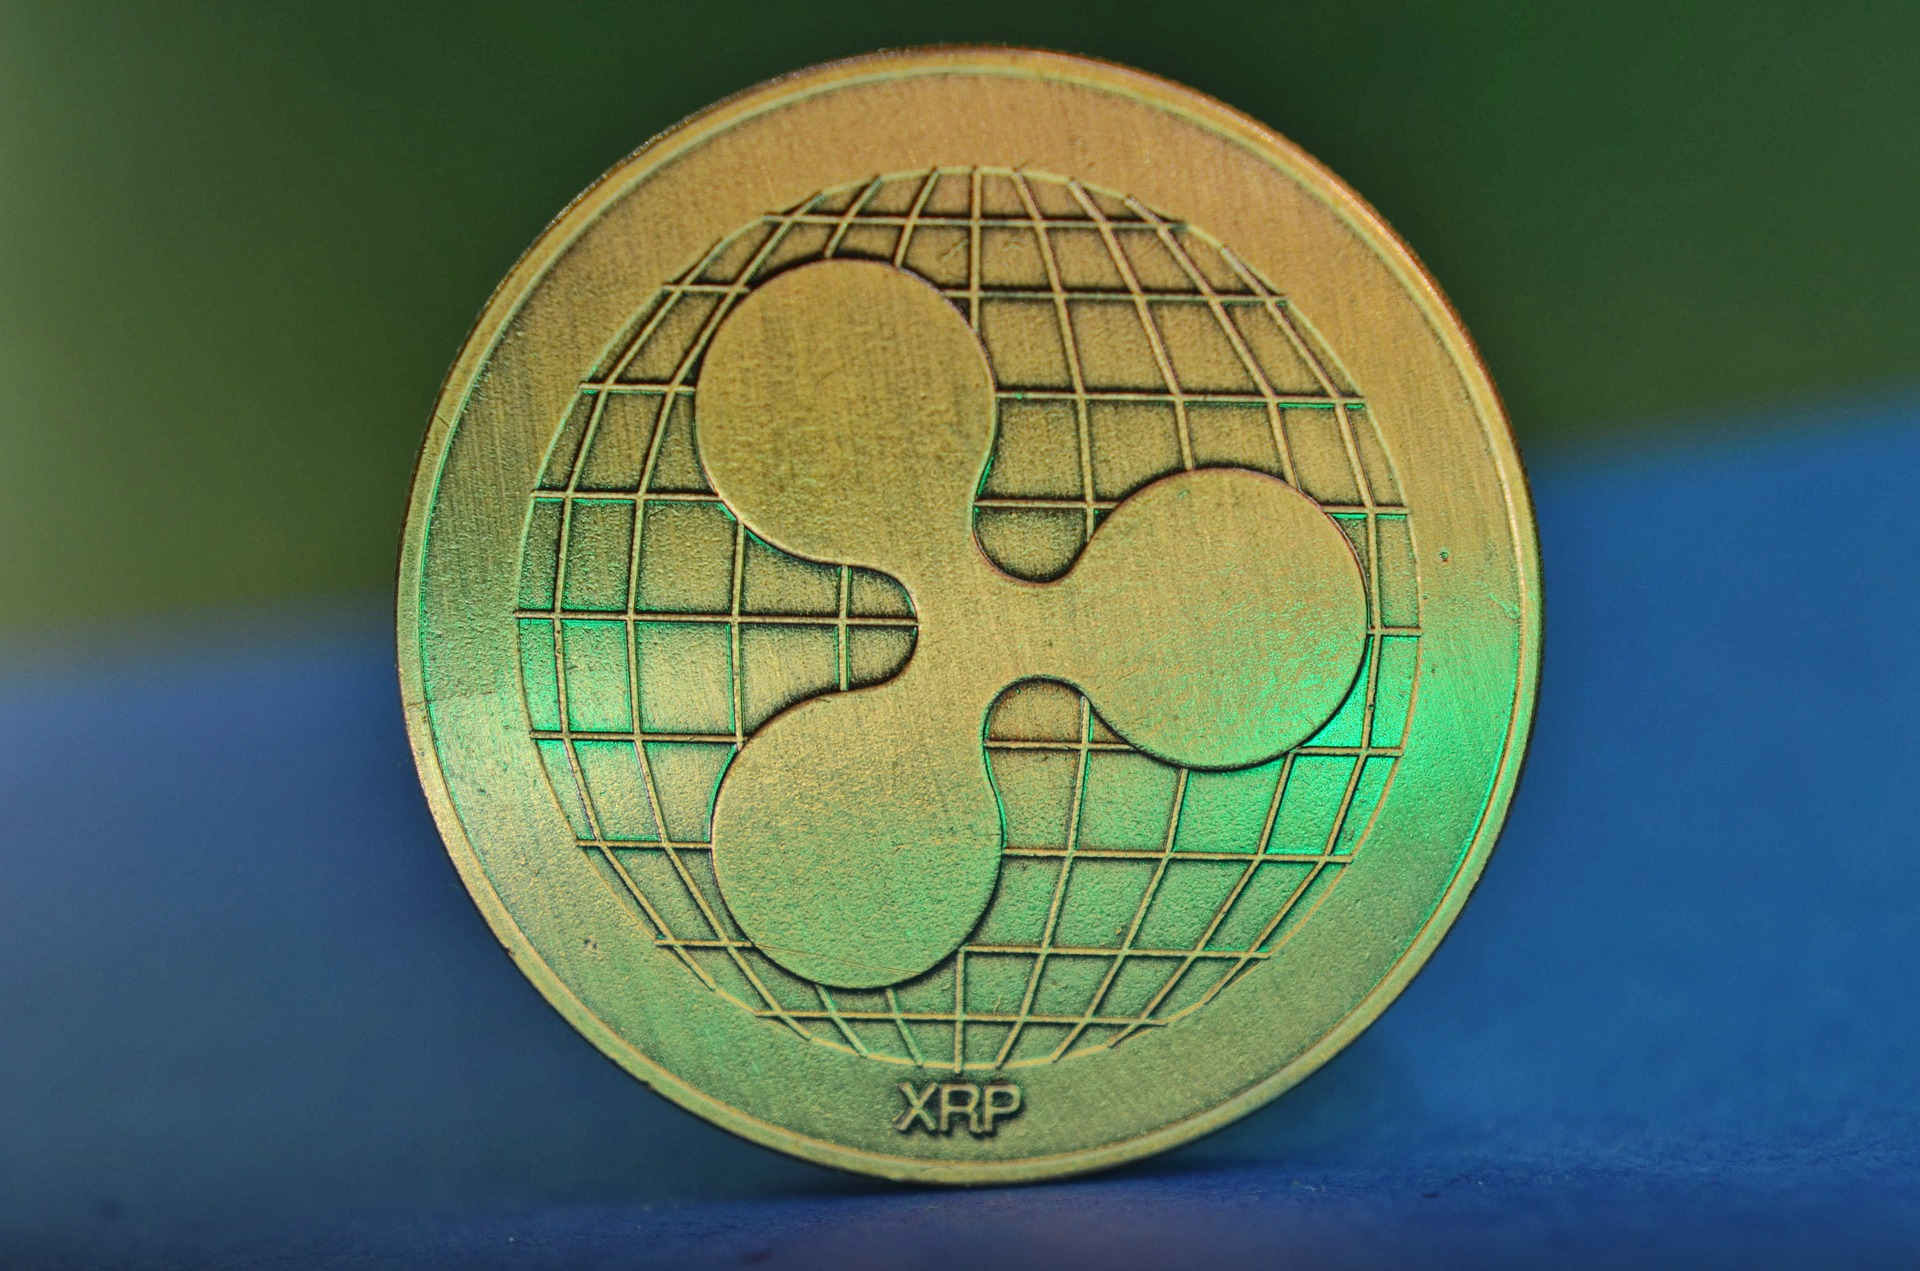 McCaleb Cashes Out 127M XRP In Previous 2 Weeks